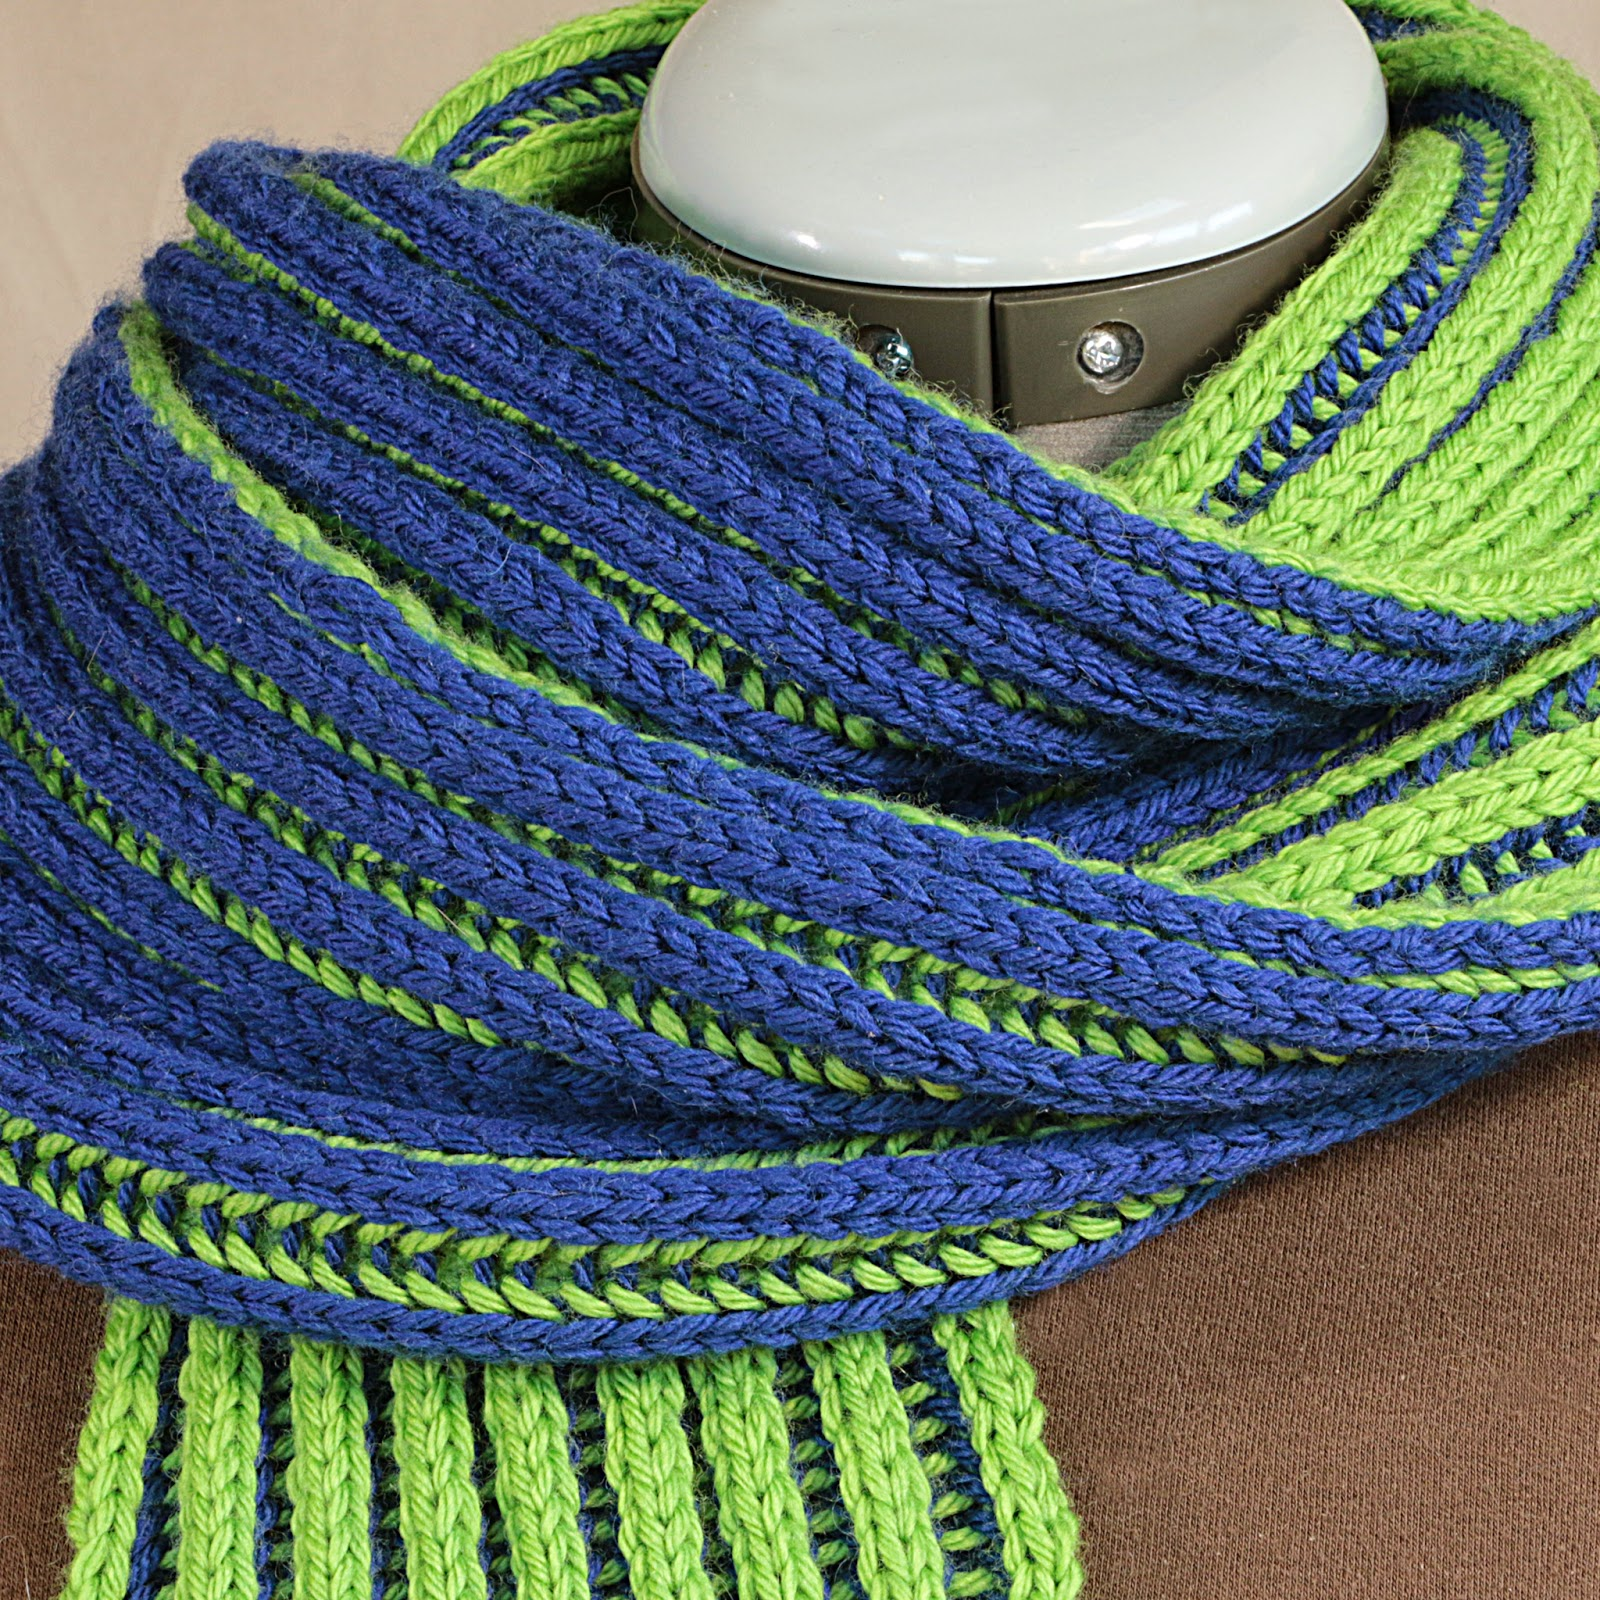 Two Color Double Knitting In The Round : Prairie willow knits double brioche scarf pattern